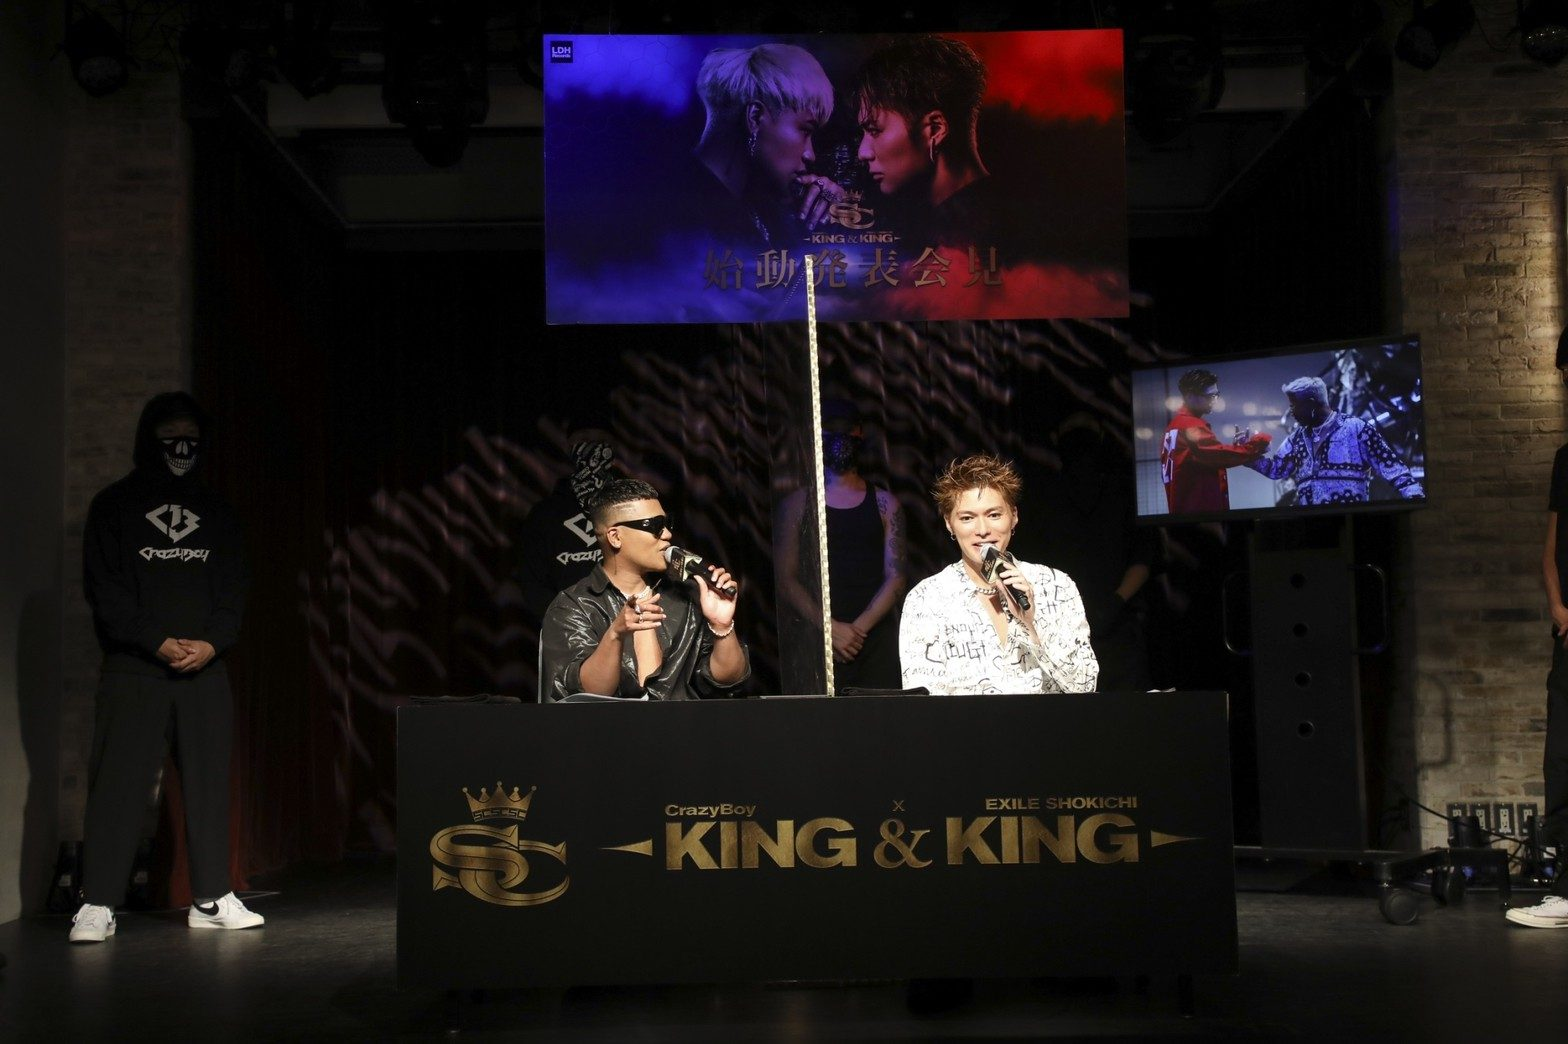 KING&KINGのEXILE SHOKICHI(EXILE/EXILE THE SECOND)とCrazyBoy(ELLY from 三代目 J SOUL BROTHERS)